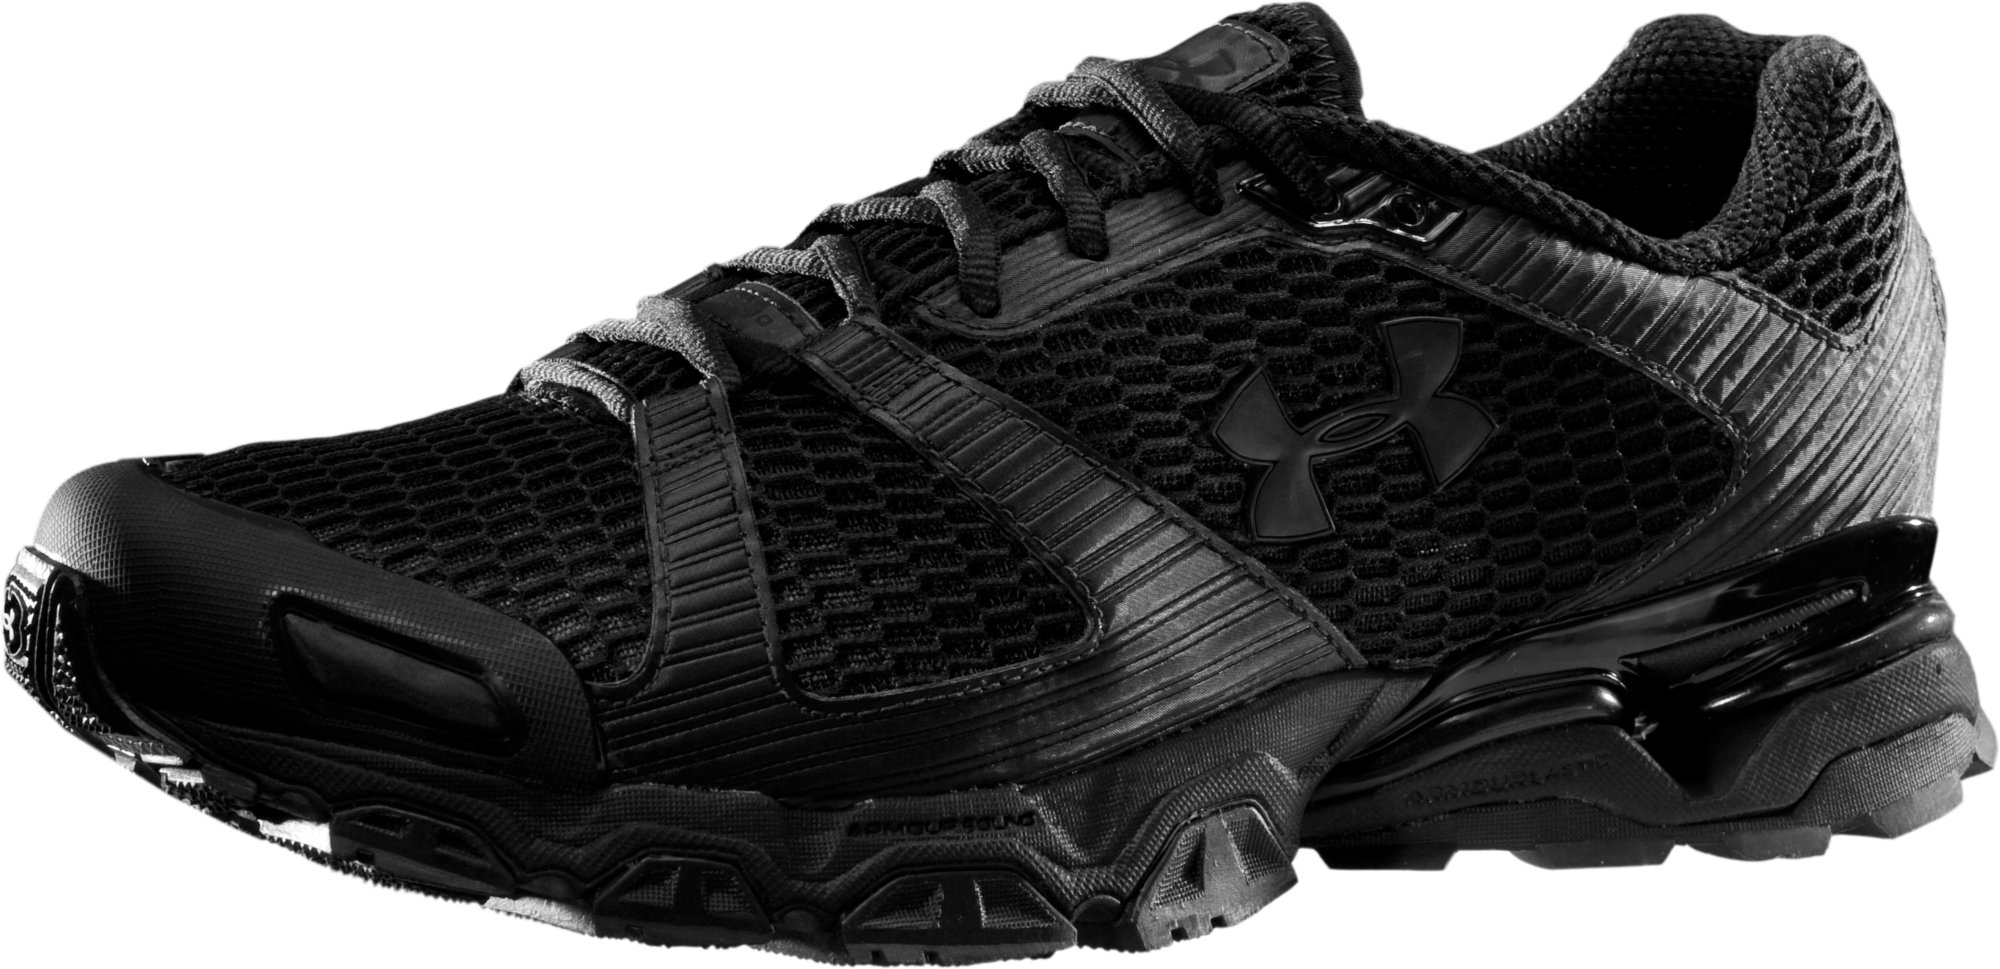 photo: Under Armour Mirage trail running shoe